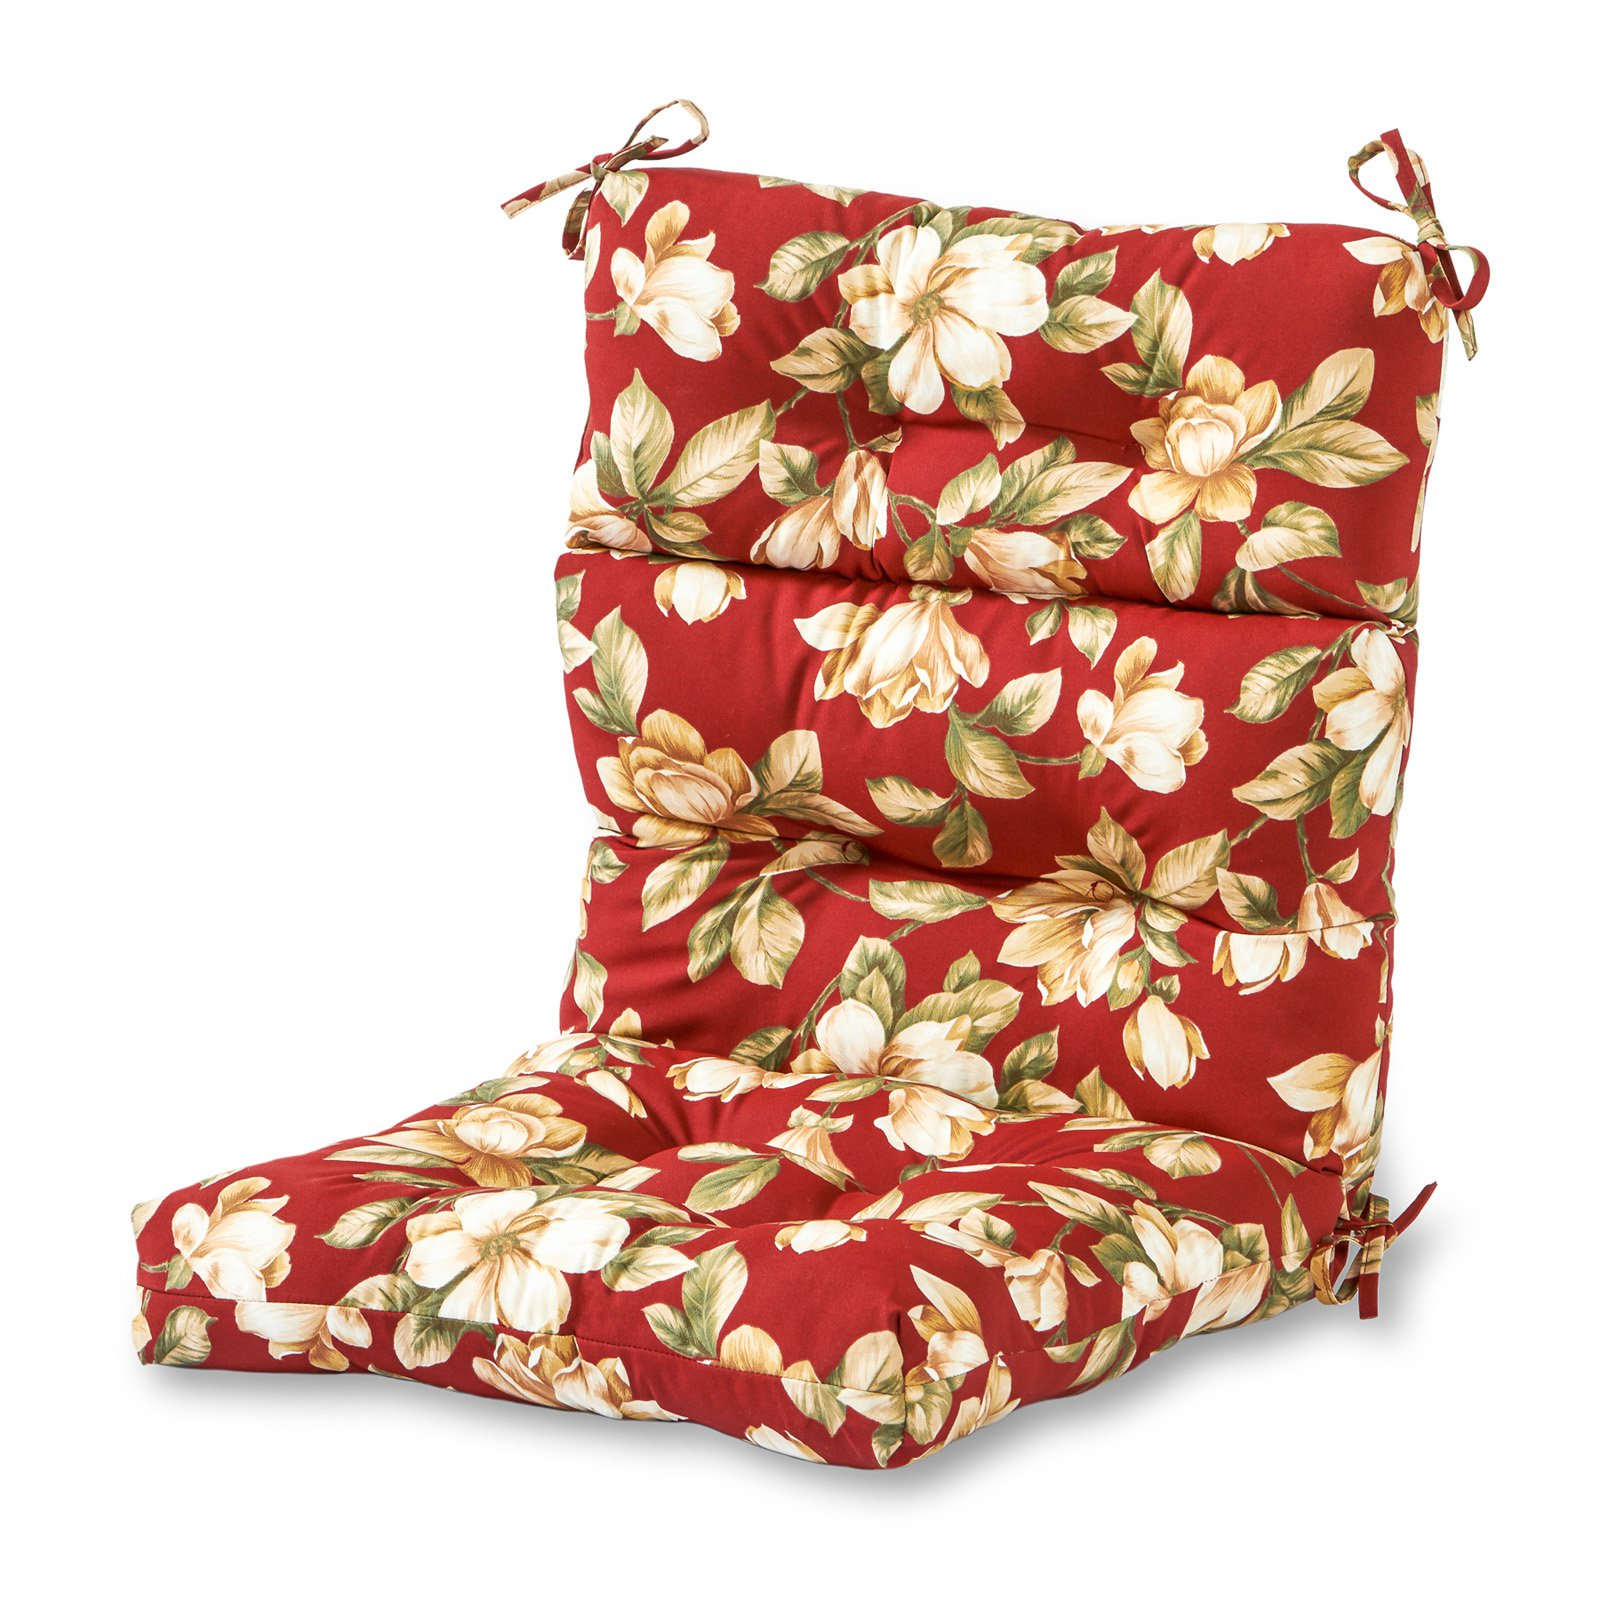 Greendale Home Fashions 44 X 22 In Outdoor High Back Chair Cushion Roma Floral Outdoor Chair Cushions Outdoor Lounge Chair Cushions High Back Dining Chairs